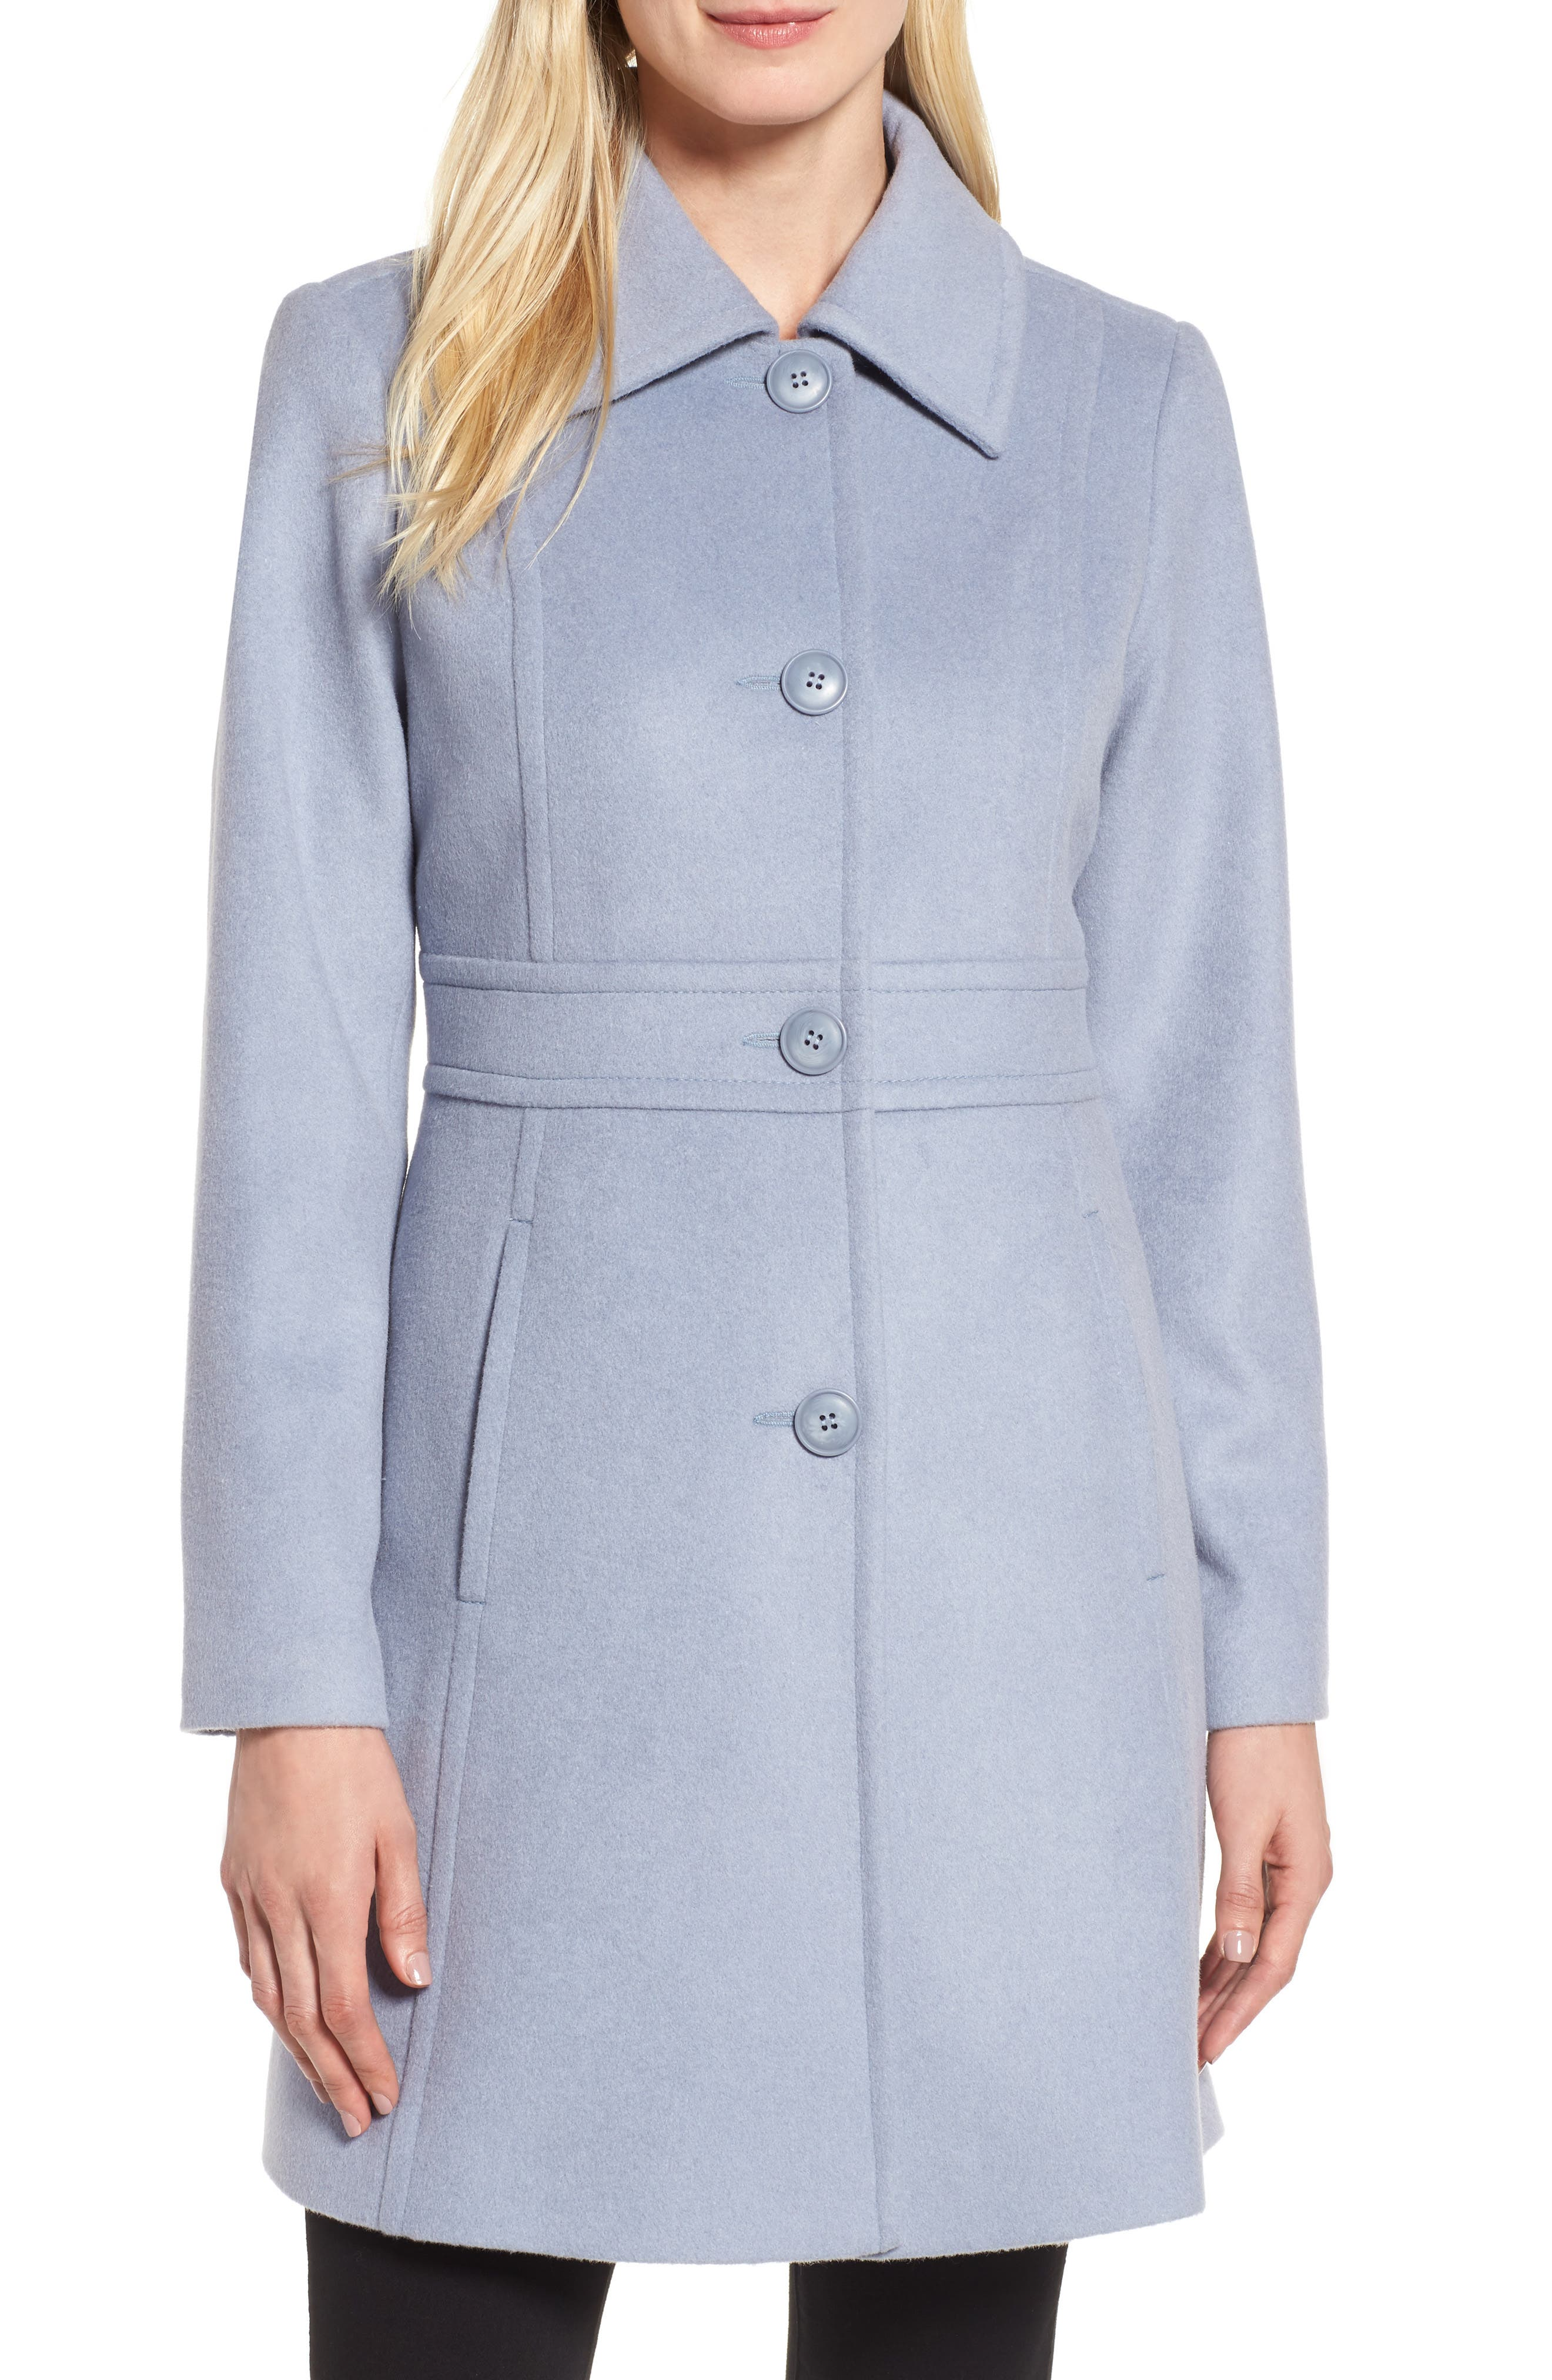 Alternate Image 1 Selected - Kristen Blake Wool Blend Walking Coat (Regular & Petite)